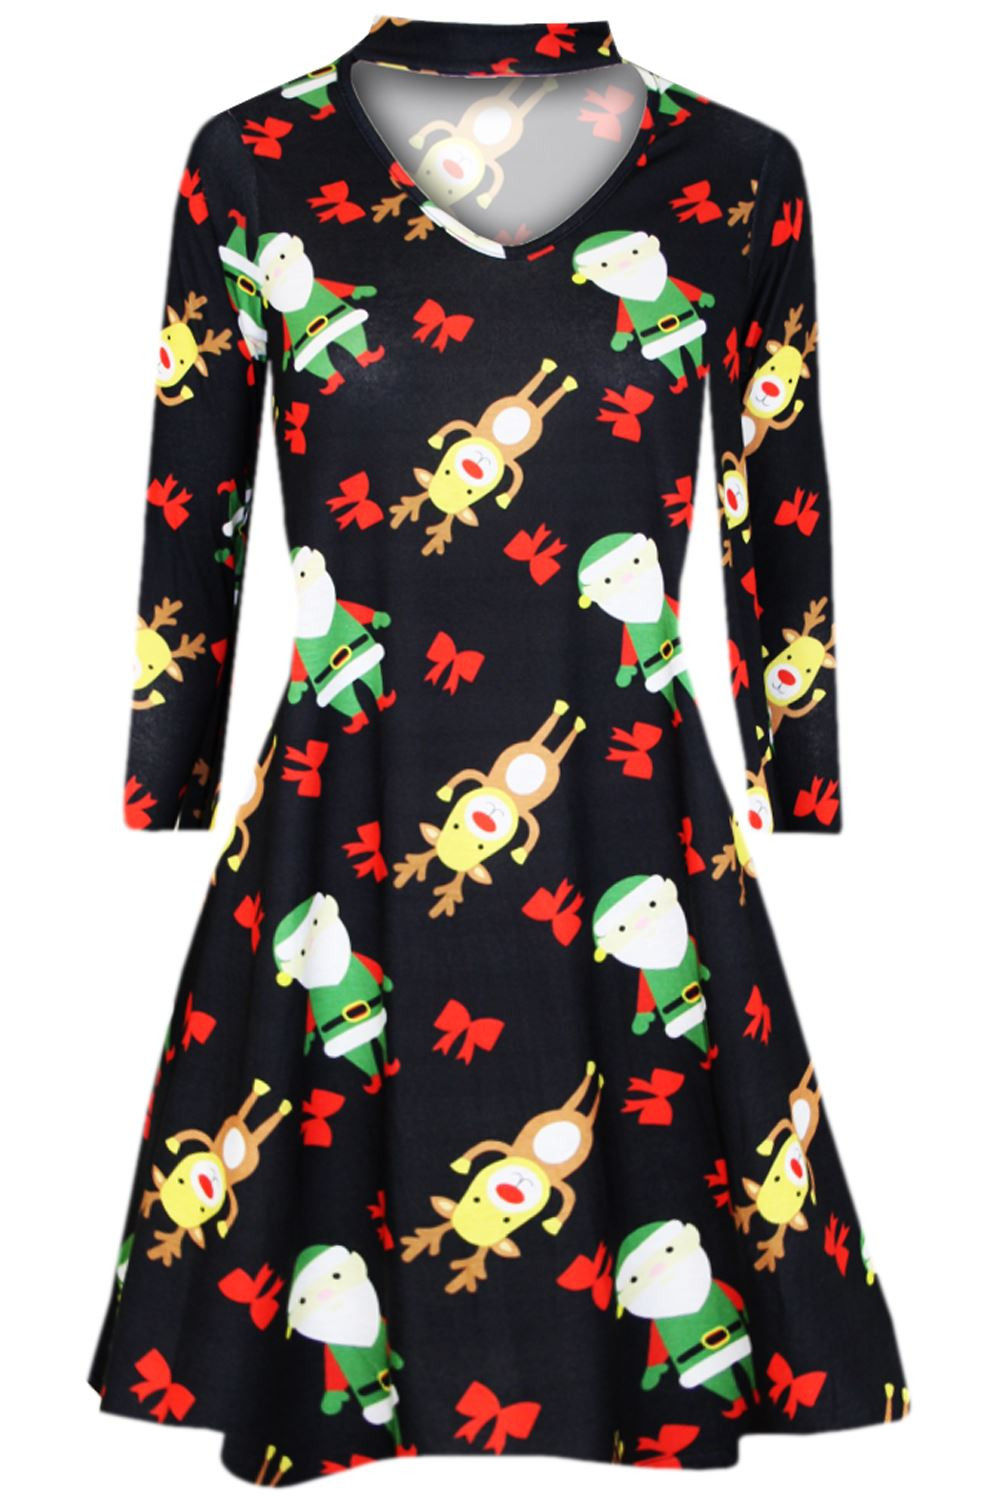 Christmas Swing Dress  Womens Kids Christmas Swing Dress Childrens Santa Gift